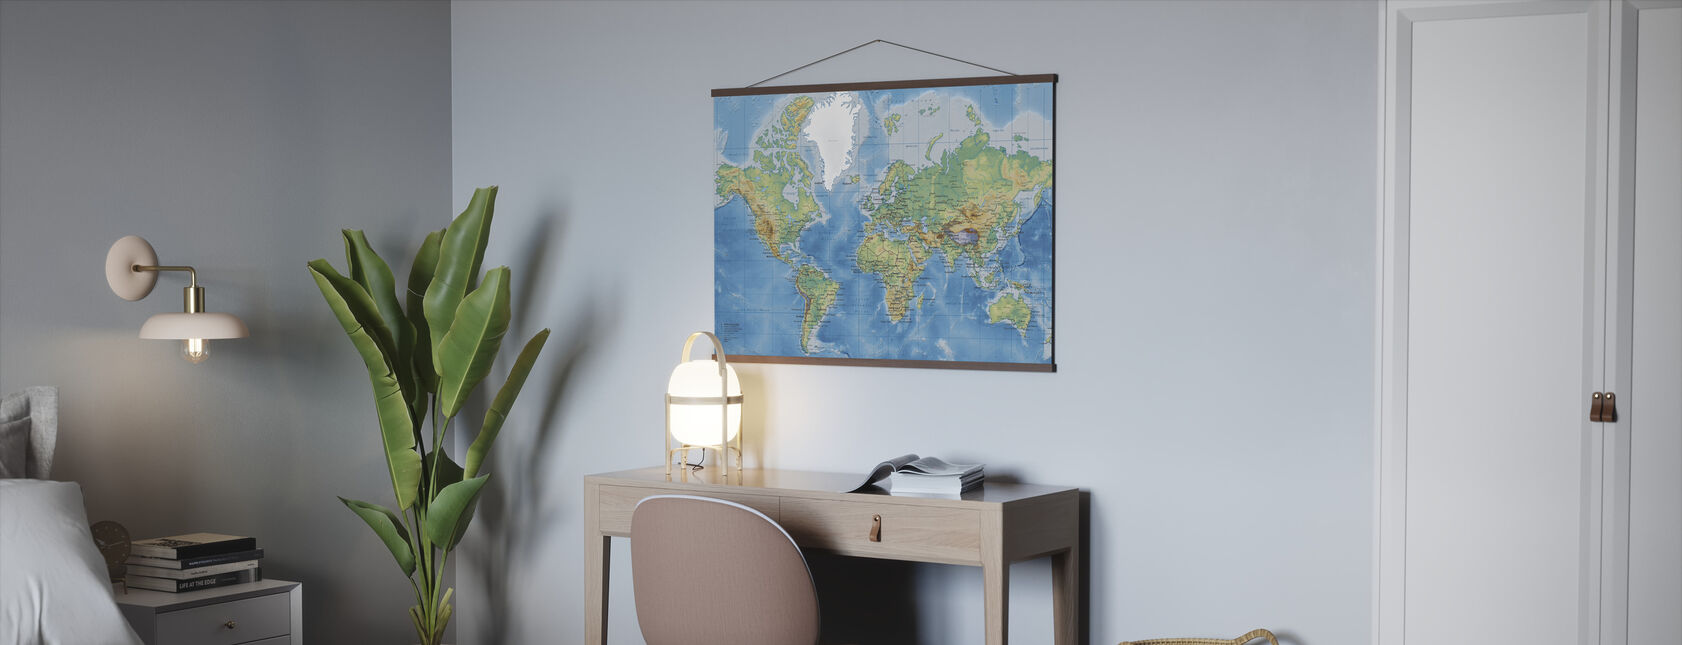 World Map Detailt - Plakat - Kontor